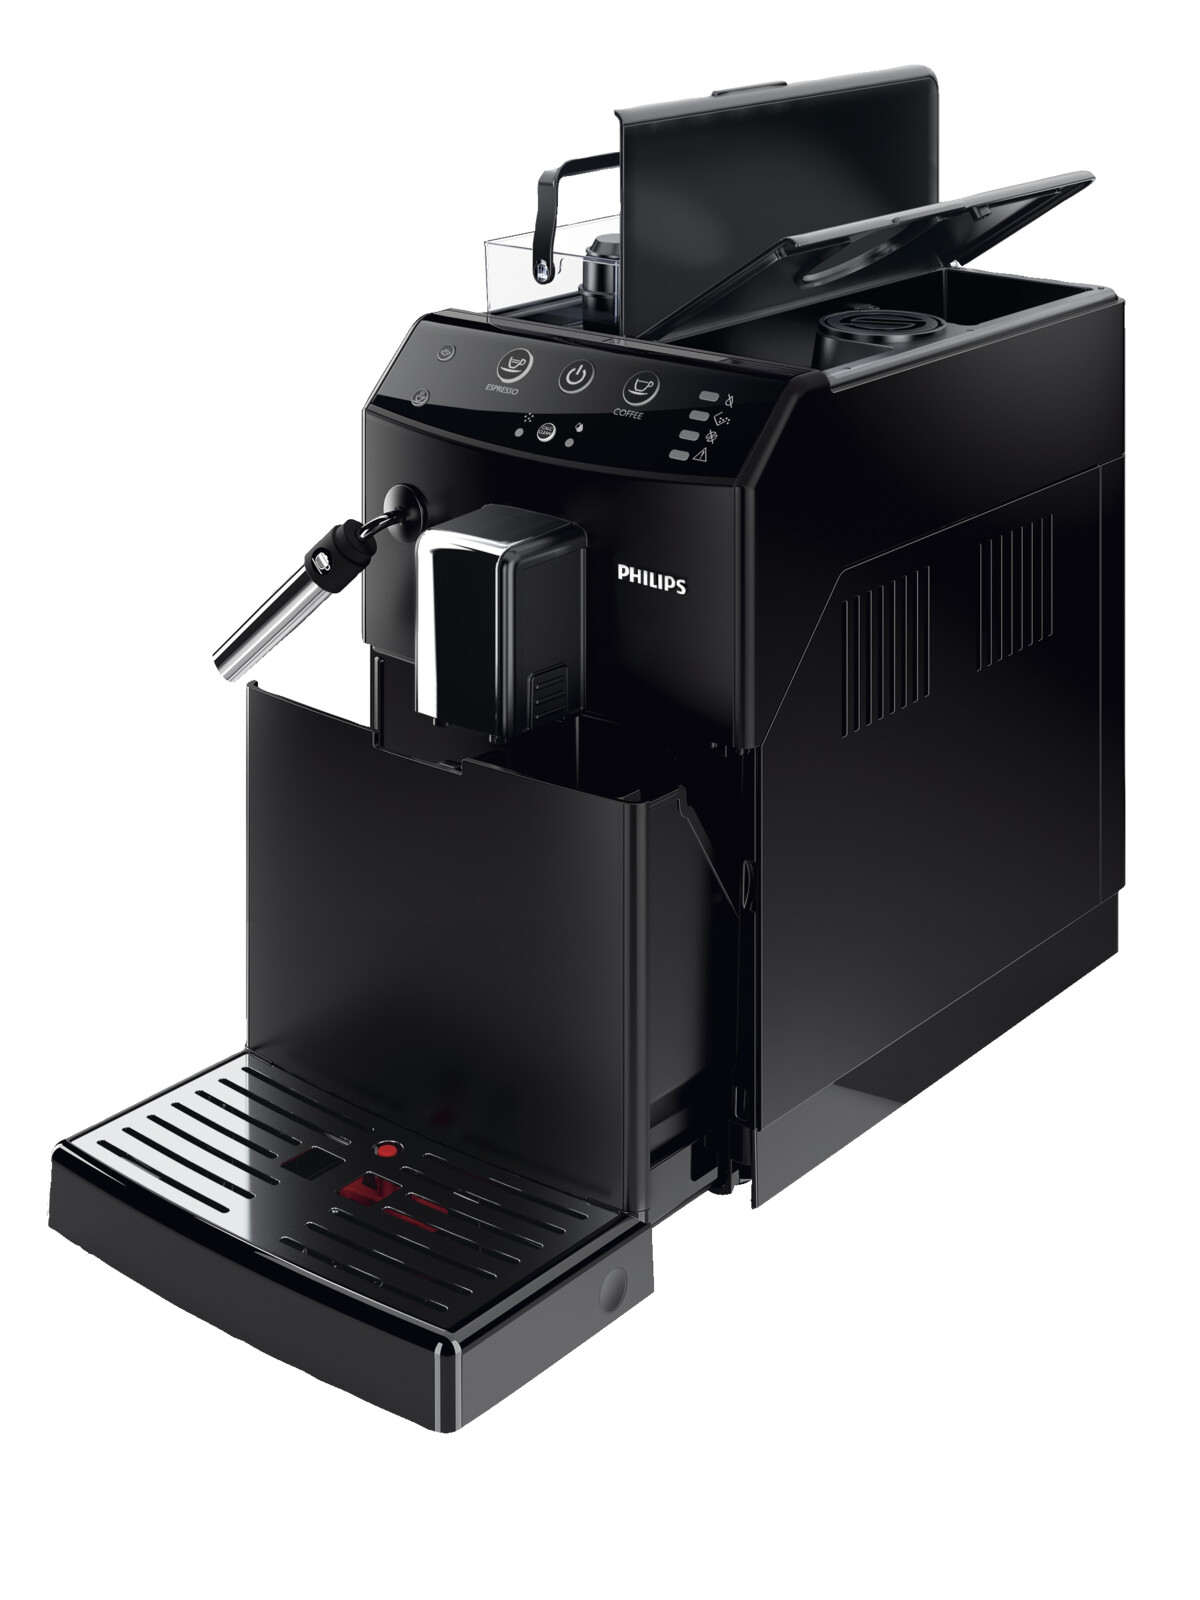 philips hd 8821 01 serie 3000 panarello kaffeevollautomat 1 8 liter wassertank ebay. Black Bedroom Furniture Sets. Home Design Ideas